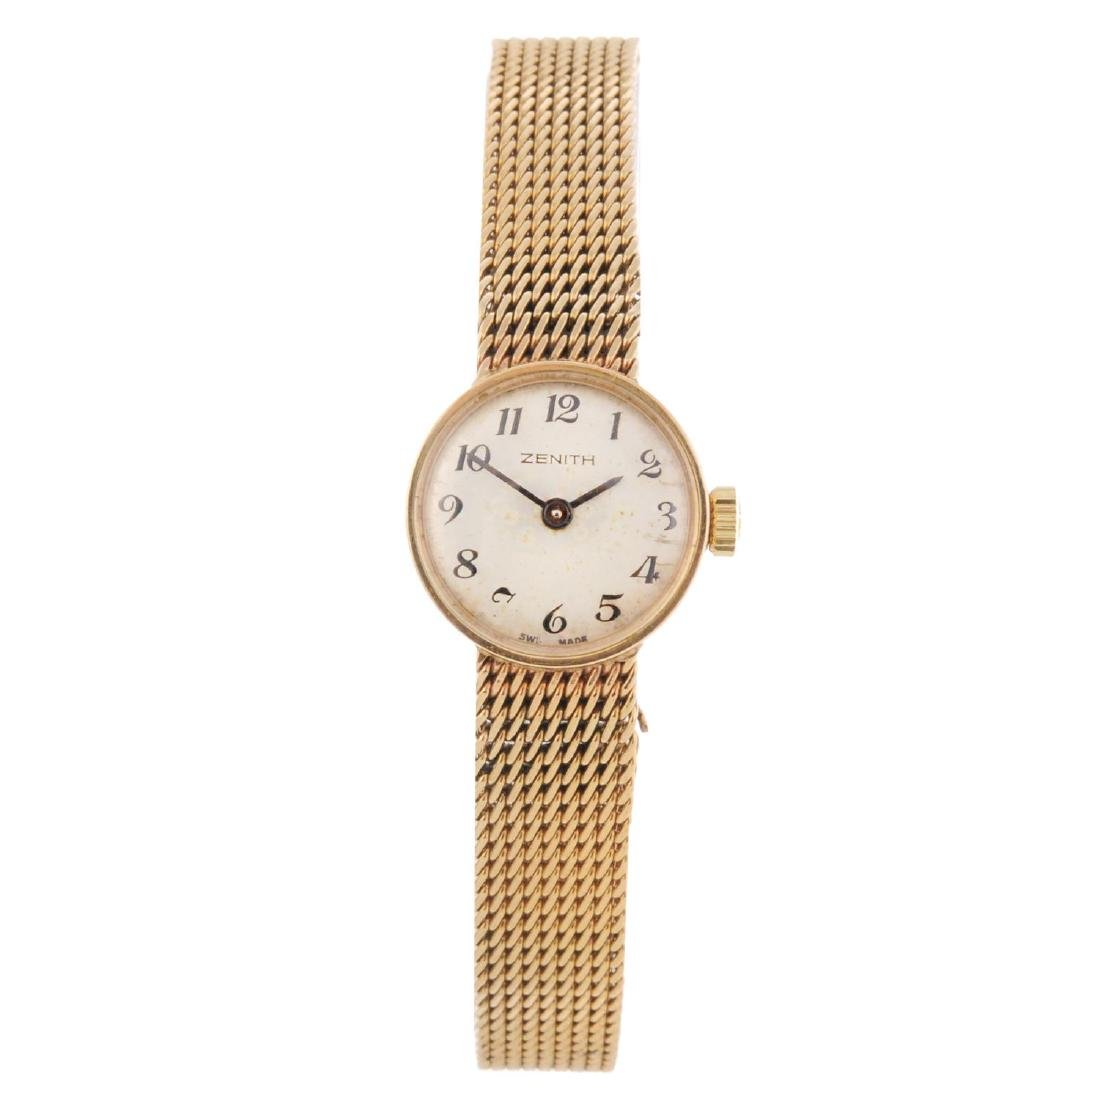 ZENITH - a lady's bracelet watch. 9ct yellow gold case,